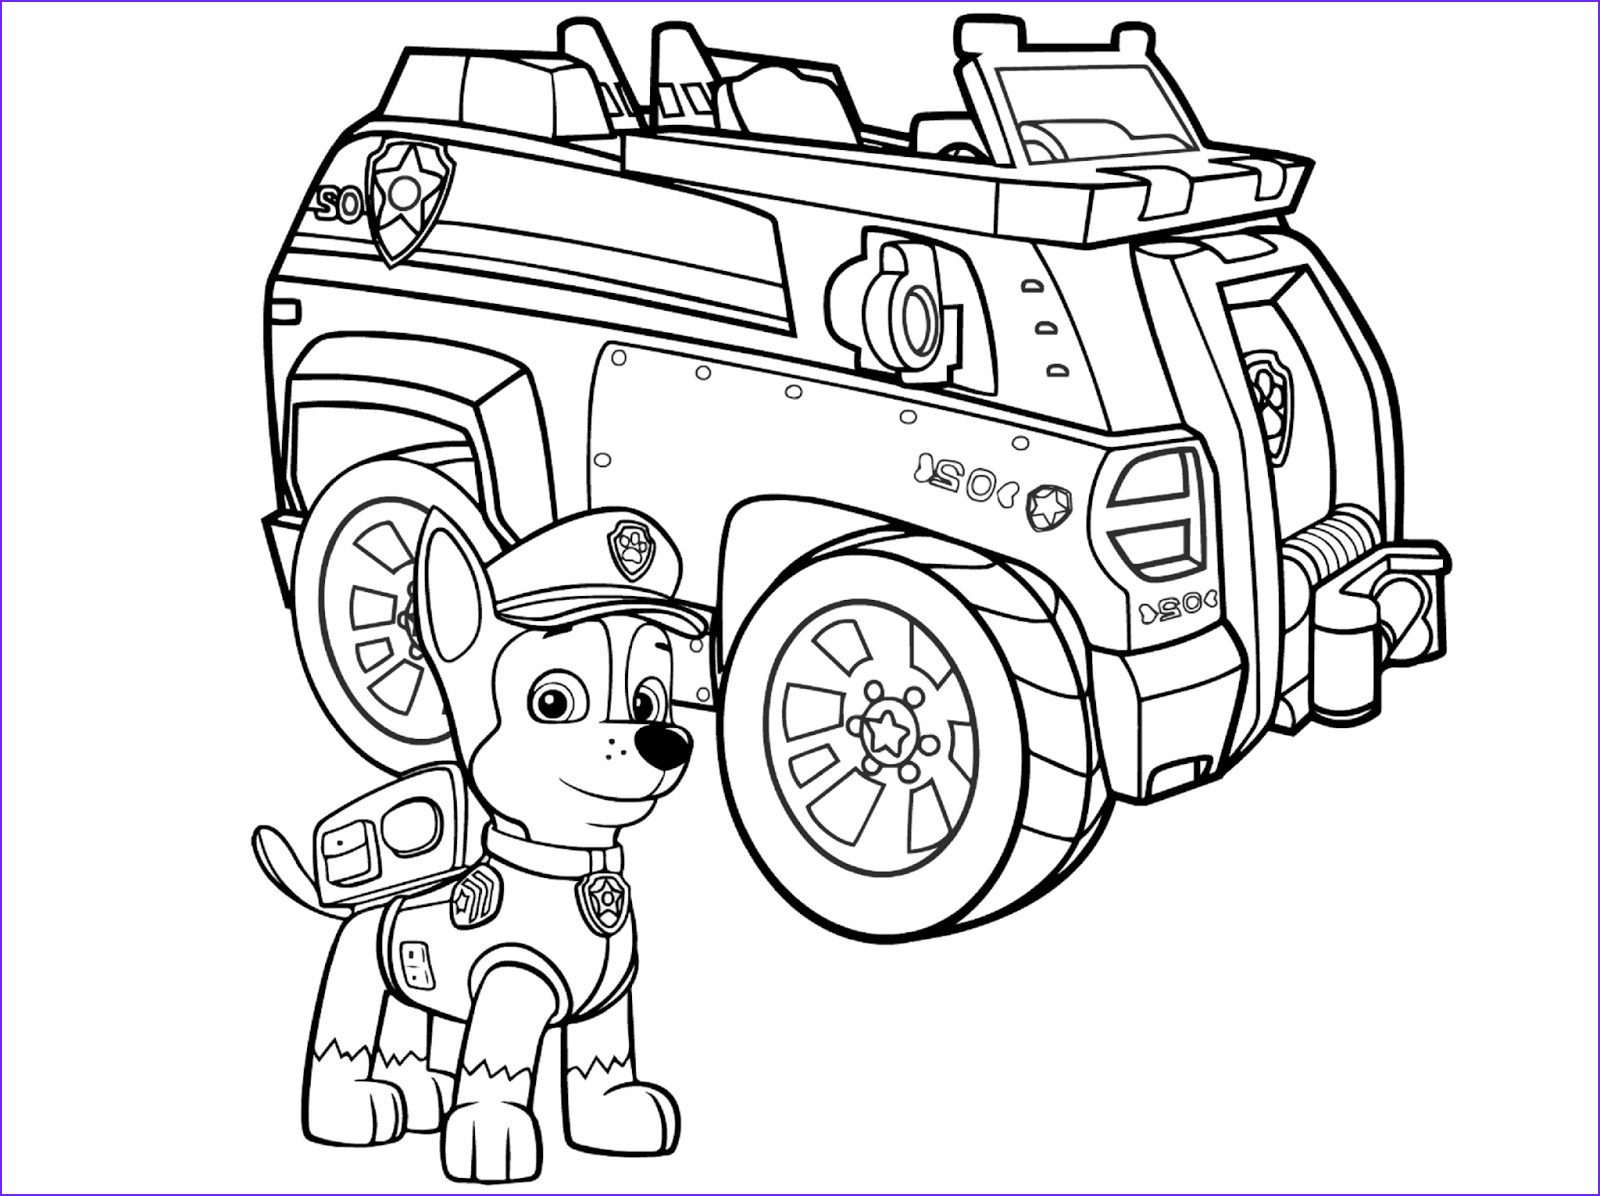 Paw Patrol Coloring Book Best Of Images Free Nick Jr Paw Patrol Coloring Pages